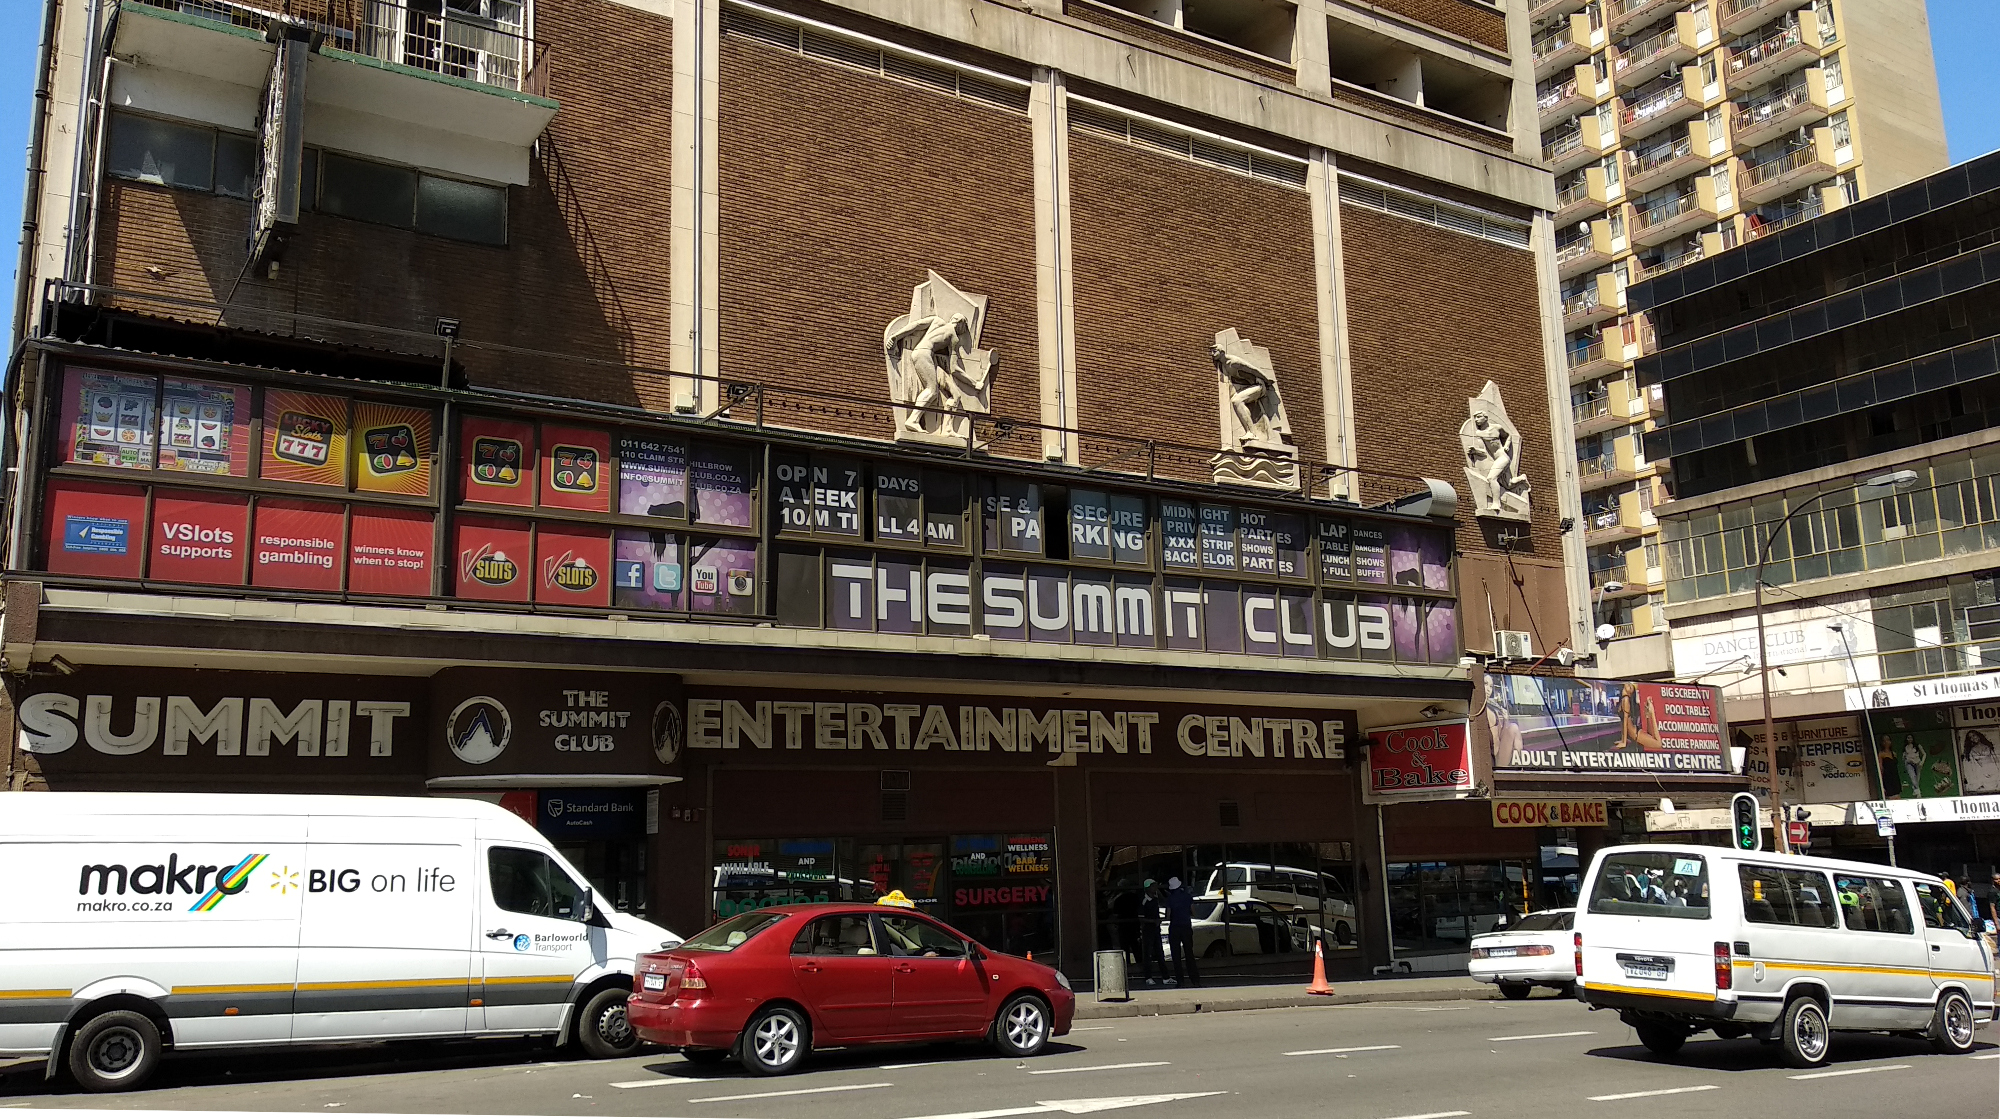 Hillbrow Summit Club